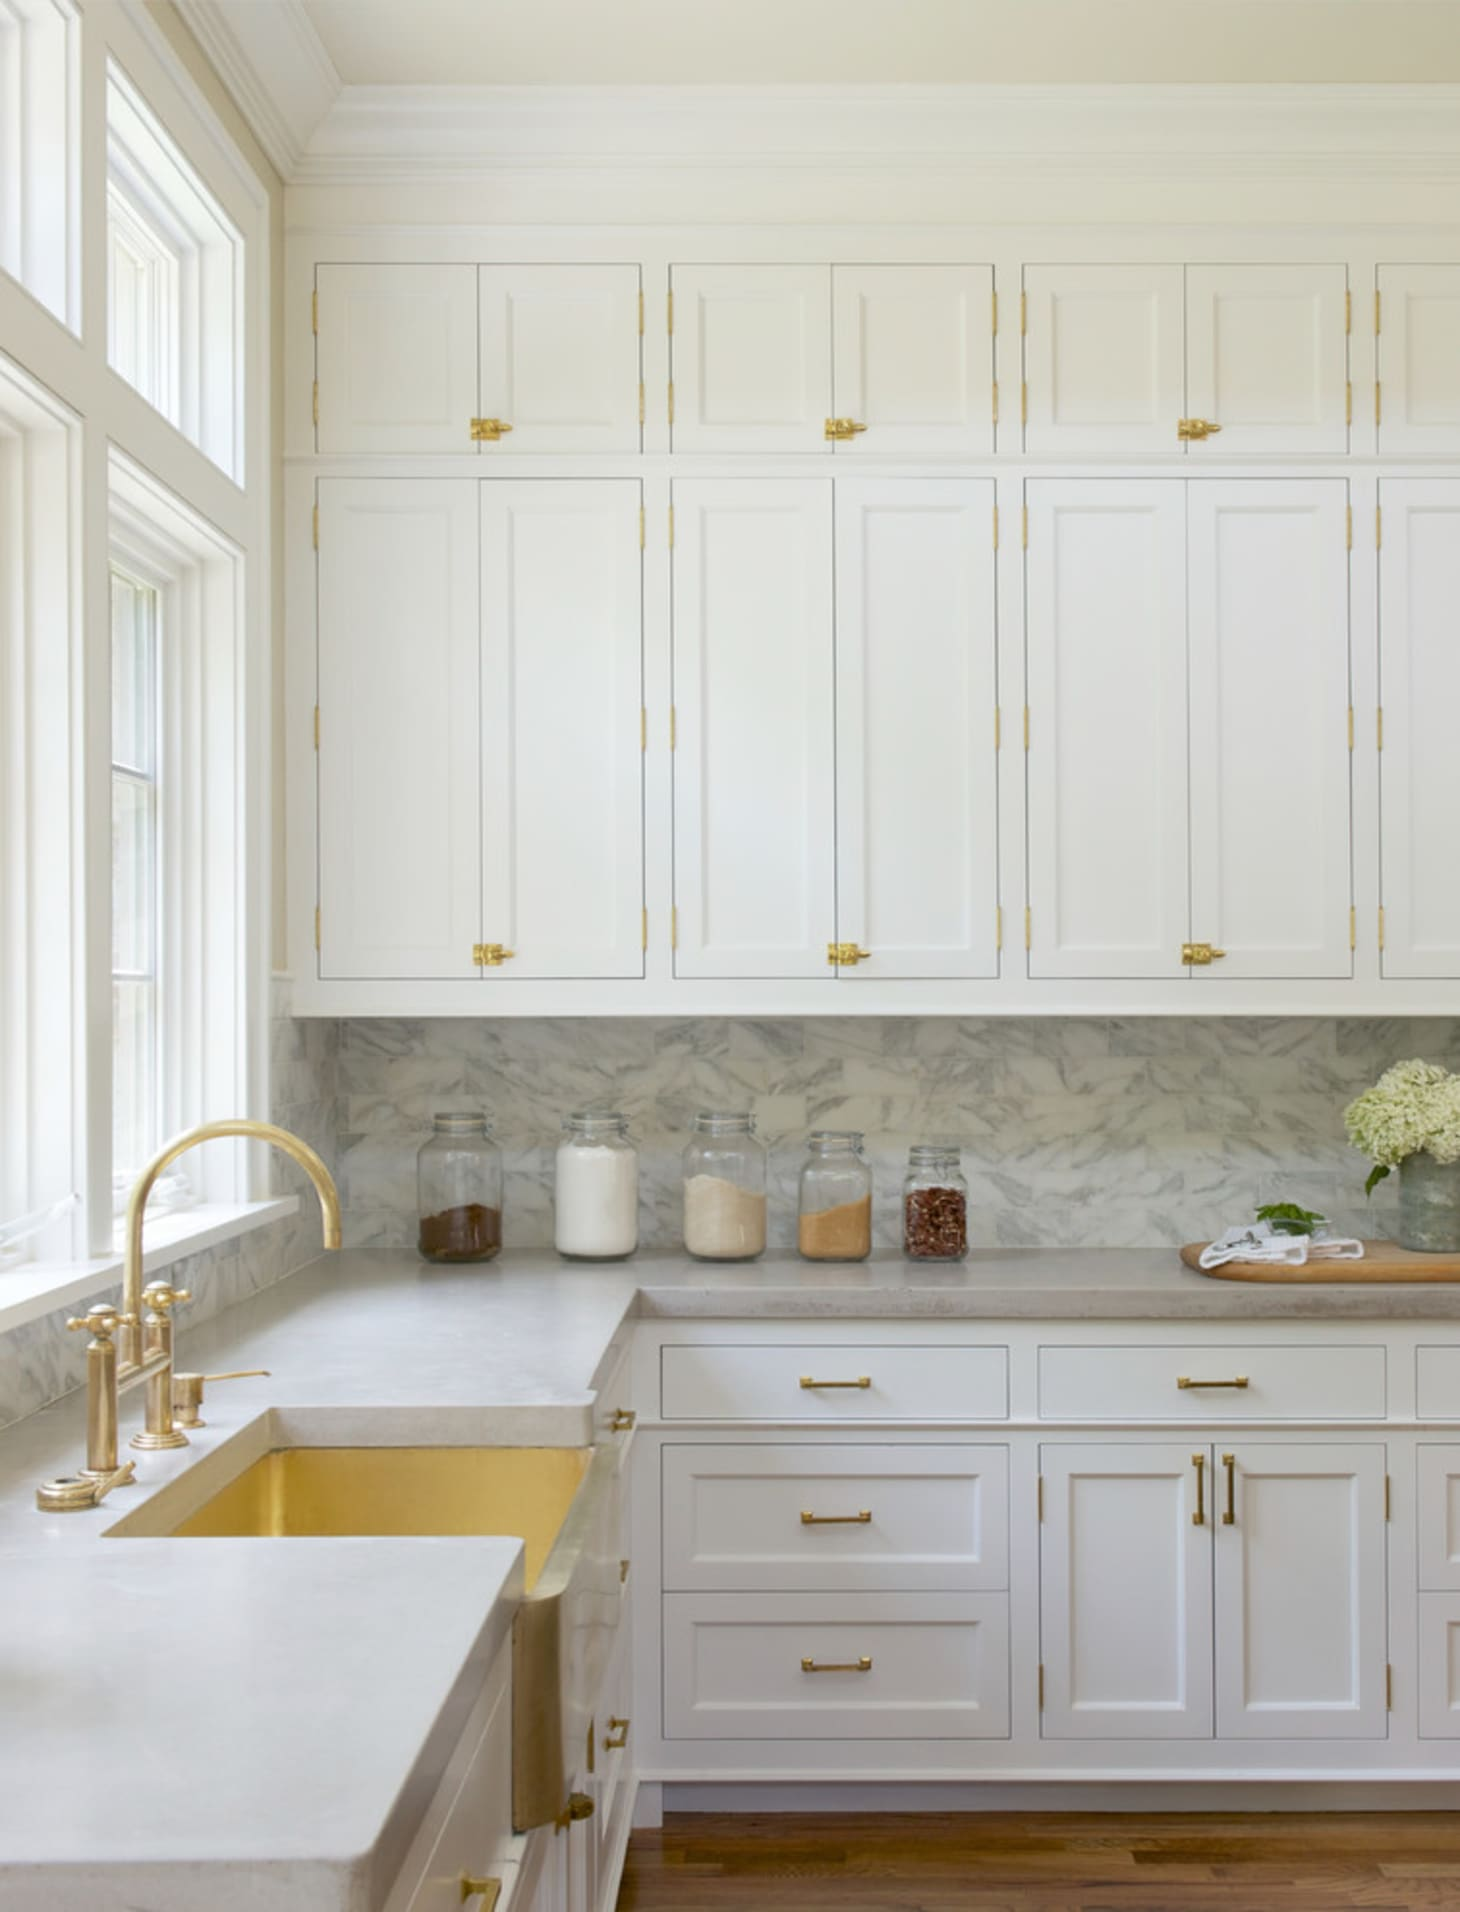 Farmhouse Or Apron Sinks Everything You Need To Know